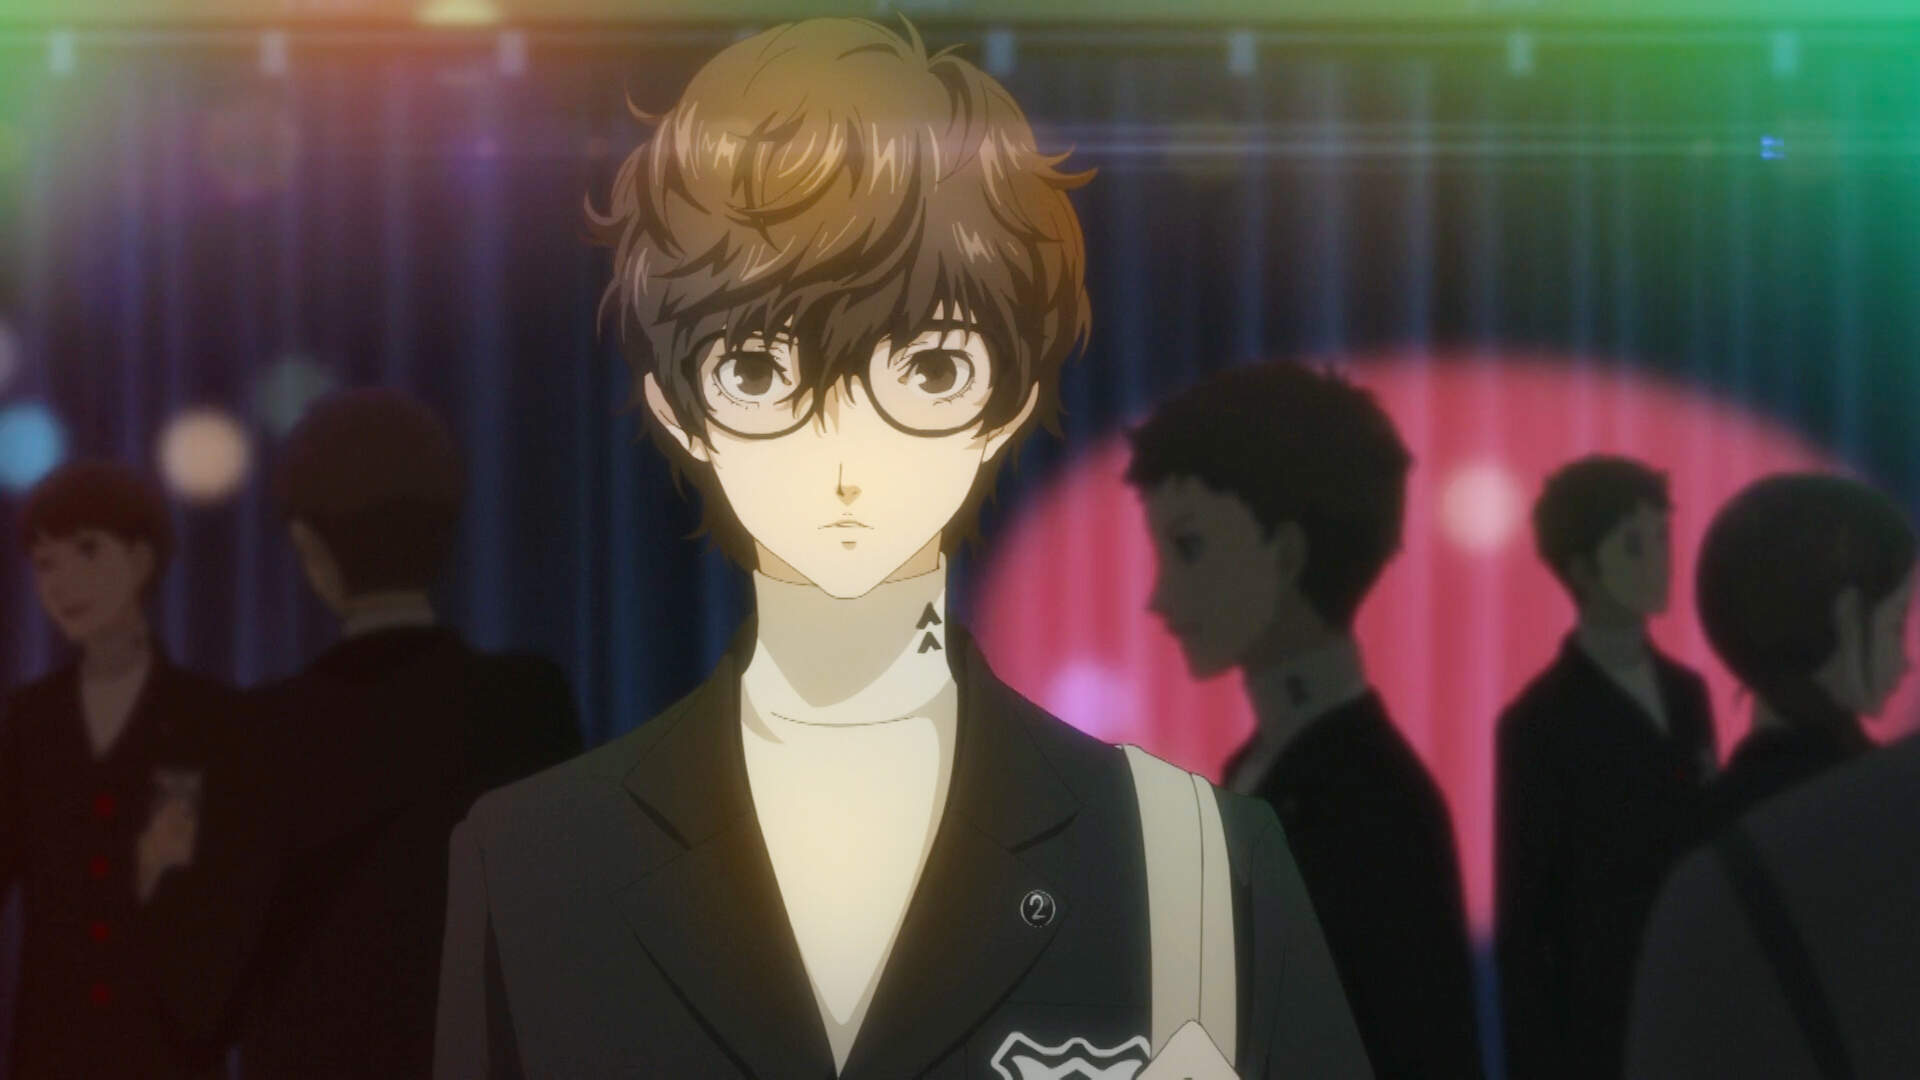 Test Answers For Persona 5 Royal and Persona 5